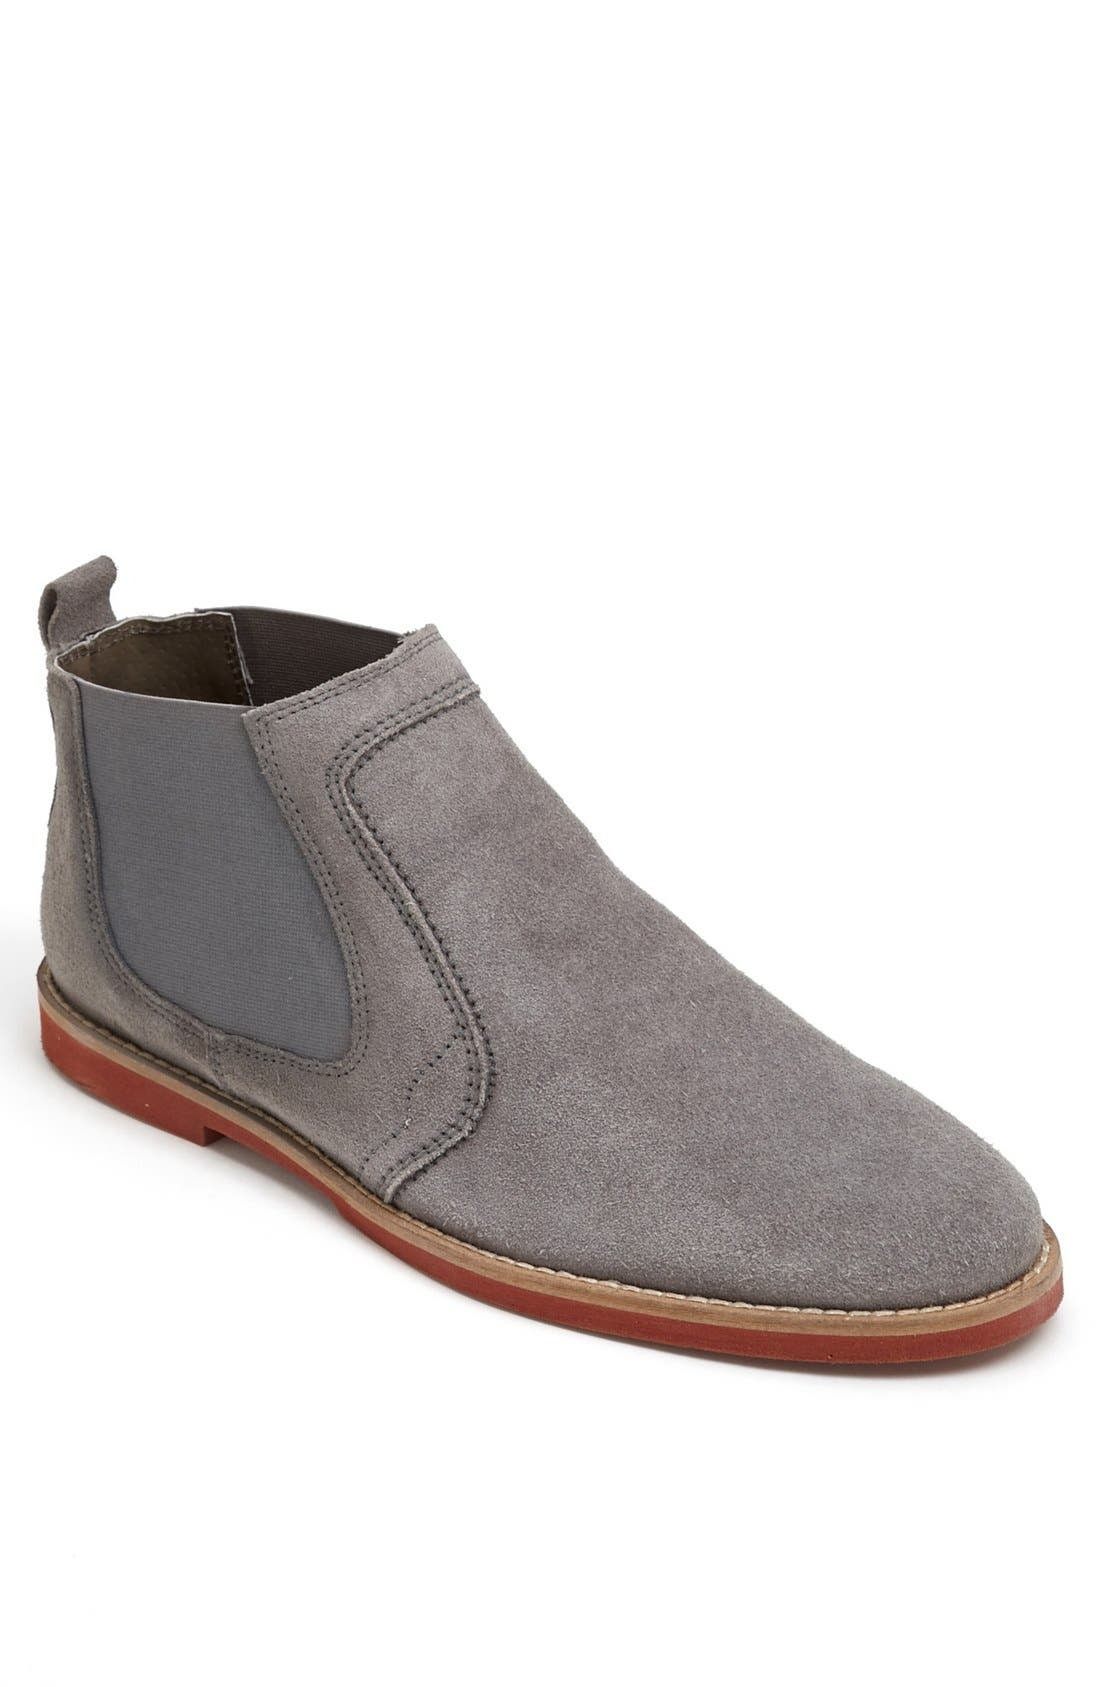 Alternate Image 1 Selected - Frank Wright 'Wise' Chelsea Boot